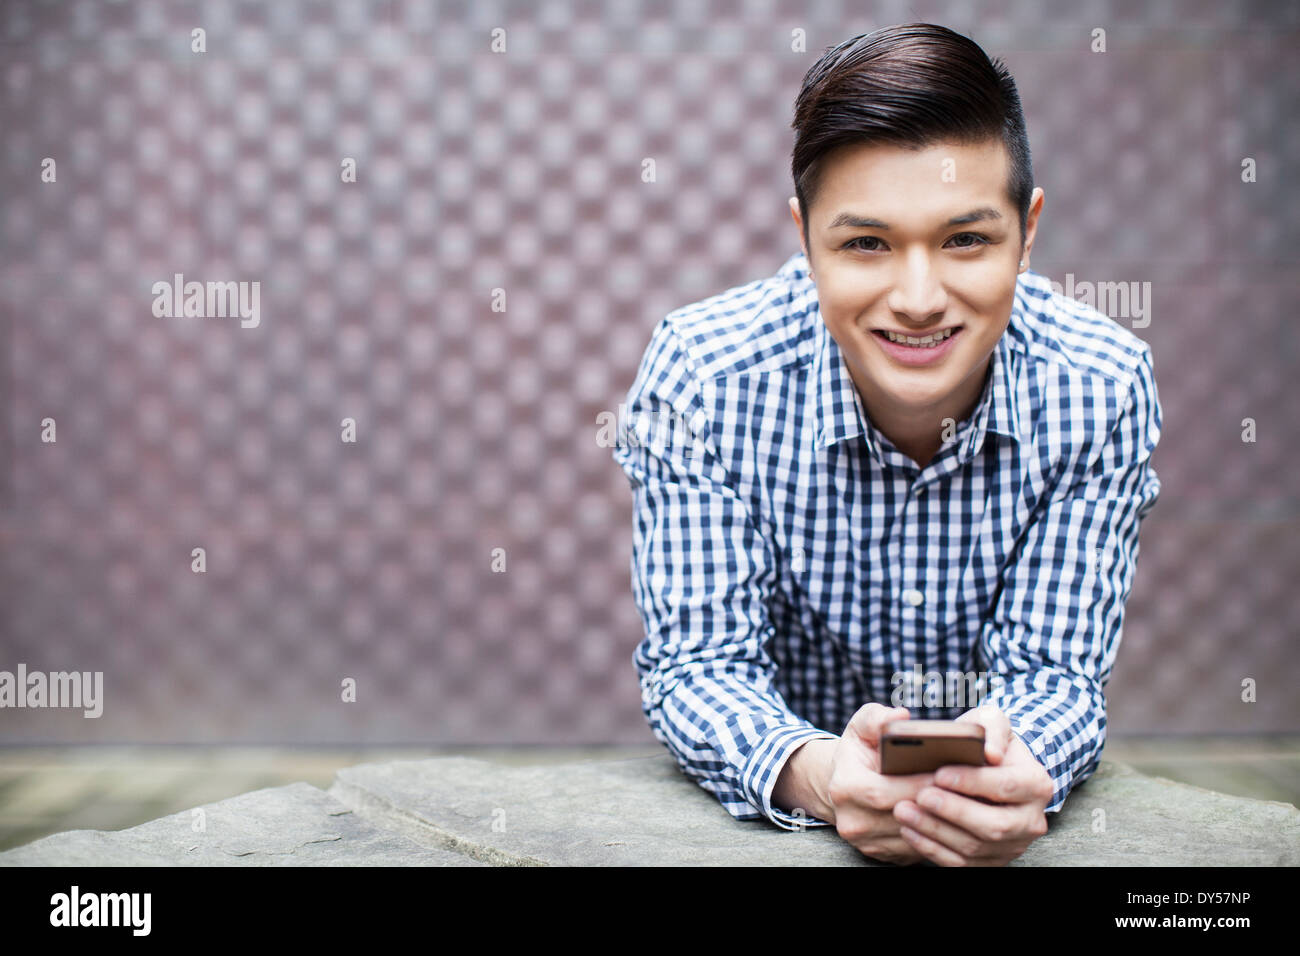 Portrait of young man holding smartphone Photo Stock